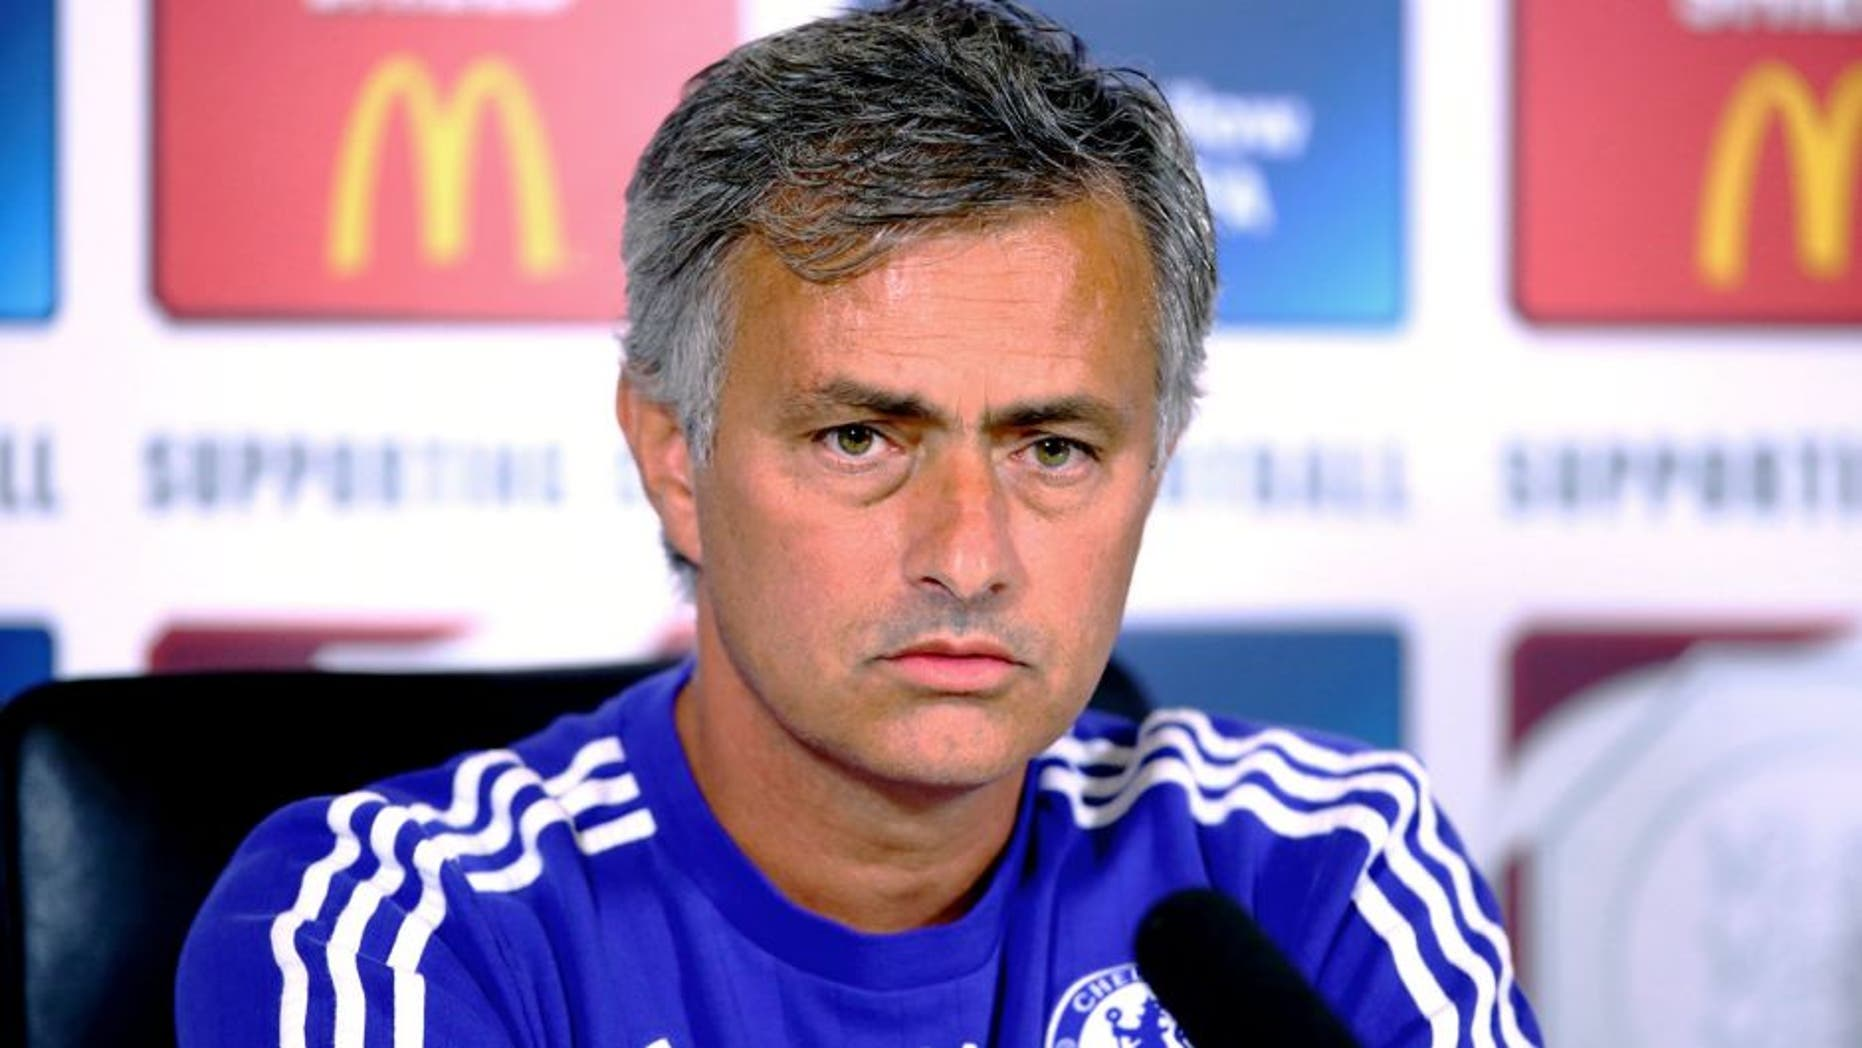 COBHAM, ENGLAND - JULY 31: Jose Mourinho talks during a press conference at Chelsea Training Ground on July 31, 2015 in Cobham, England. (Photo by Jordan Mansfield/Getty Images)